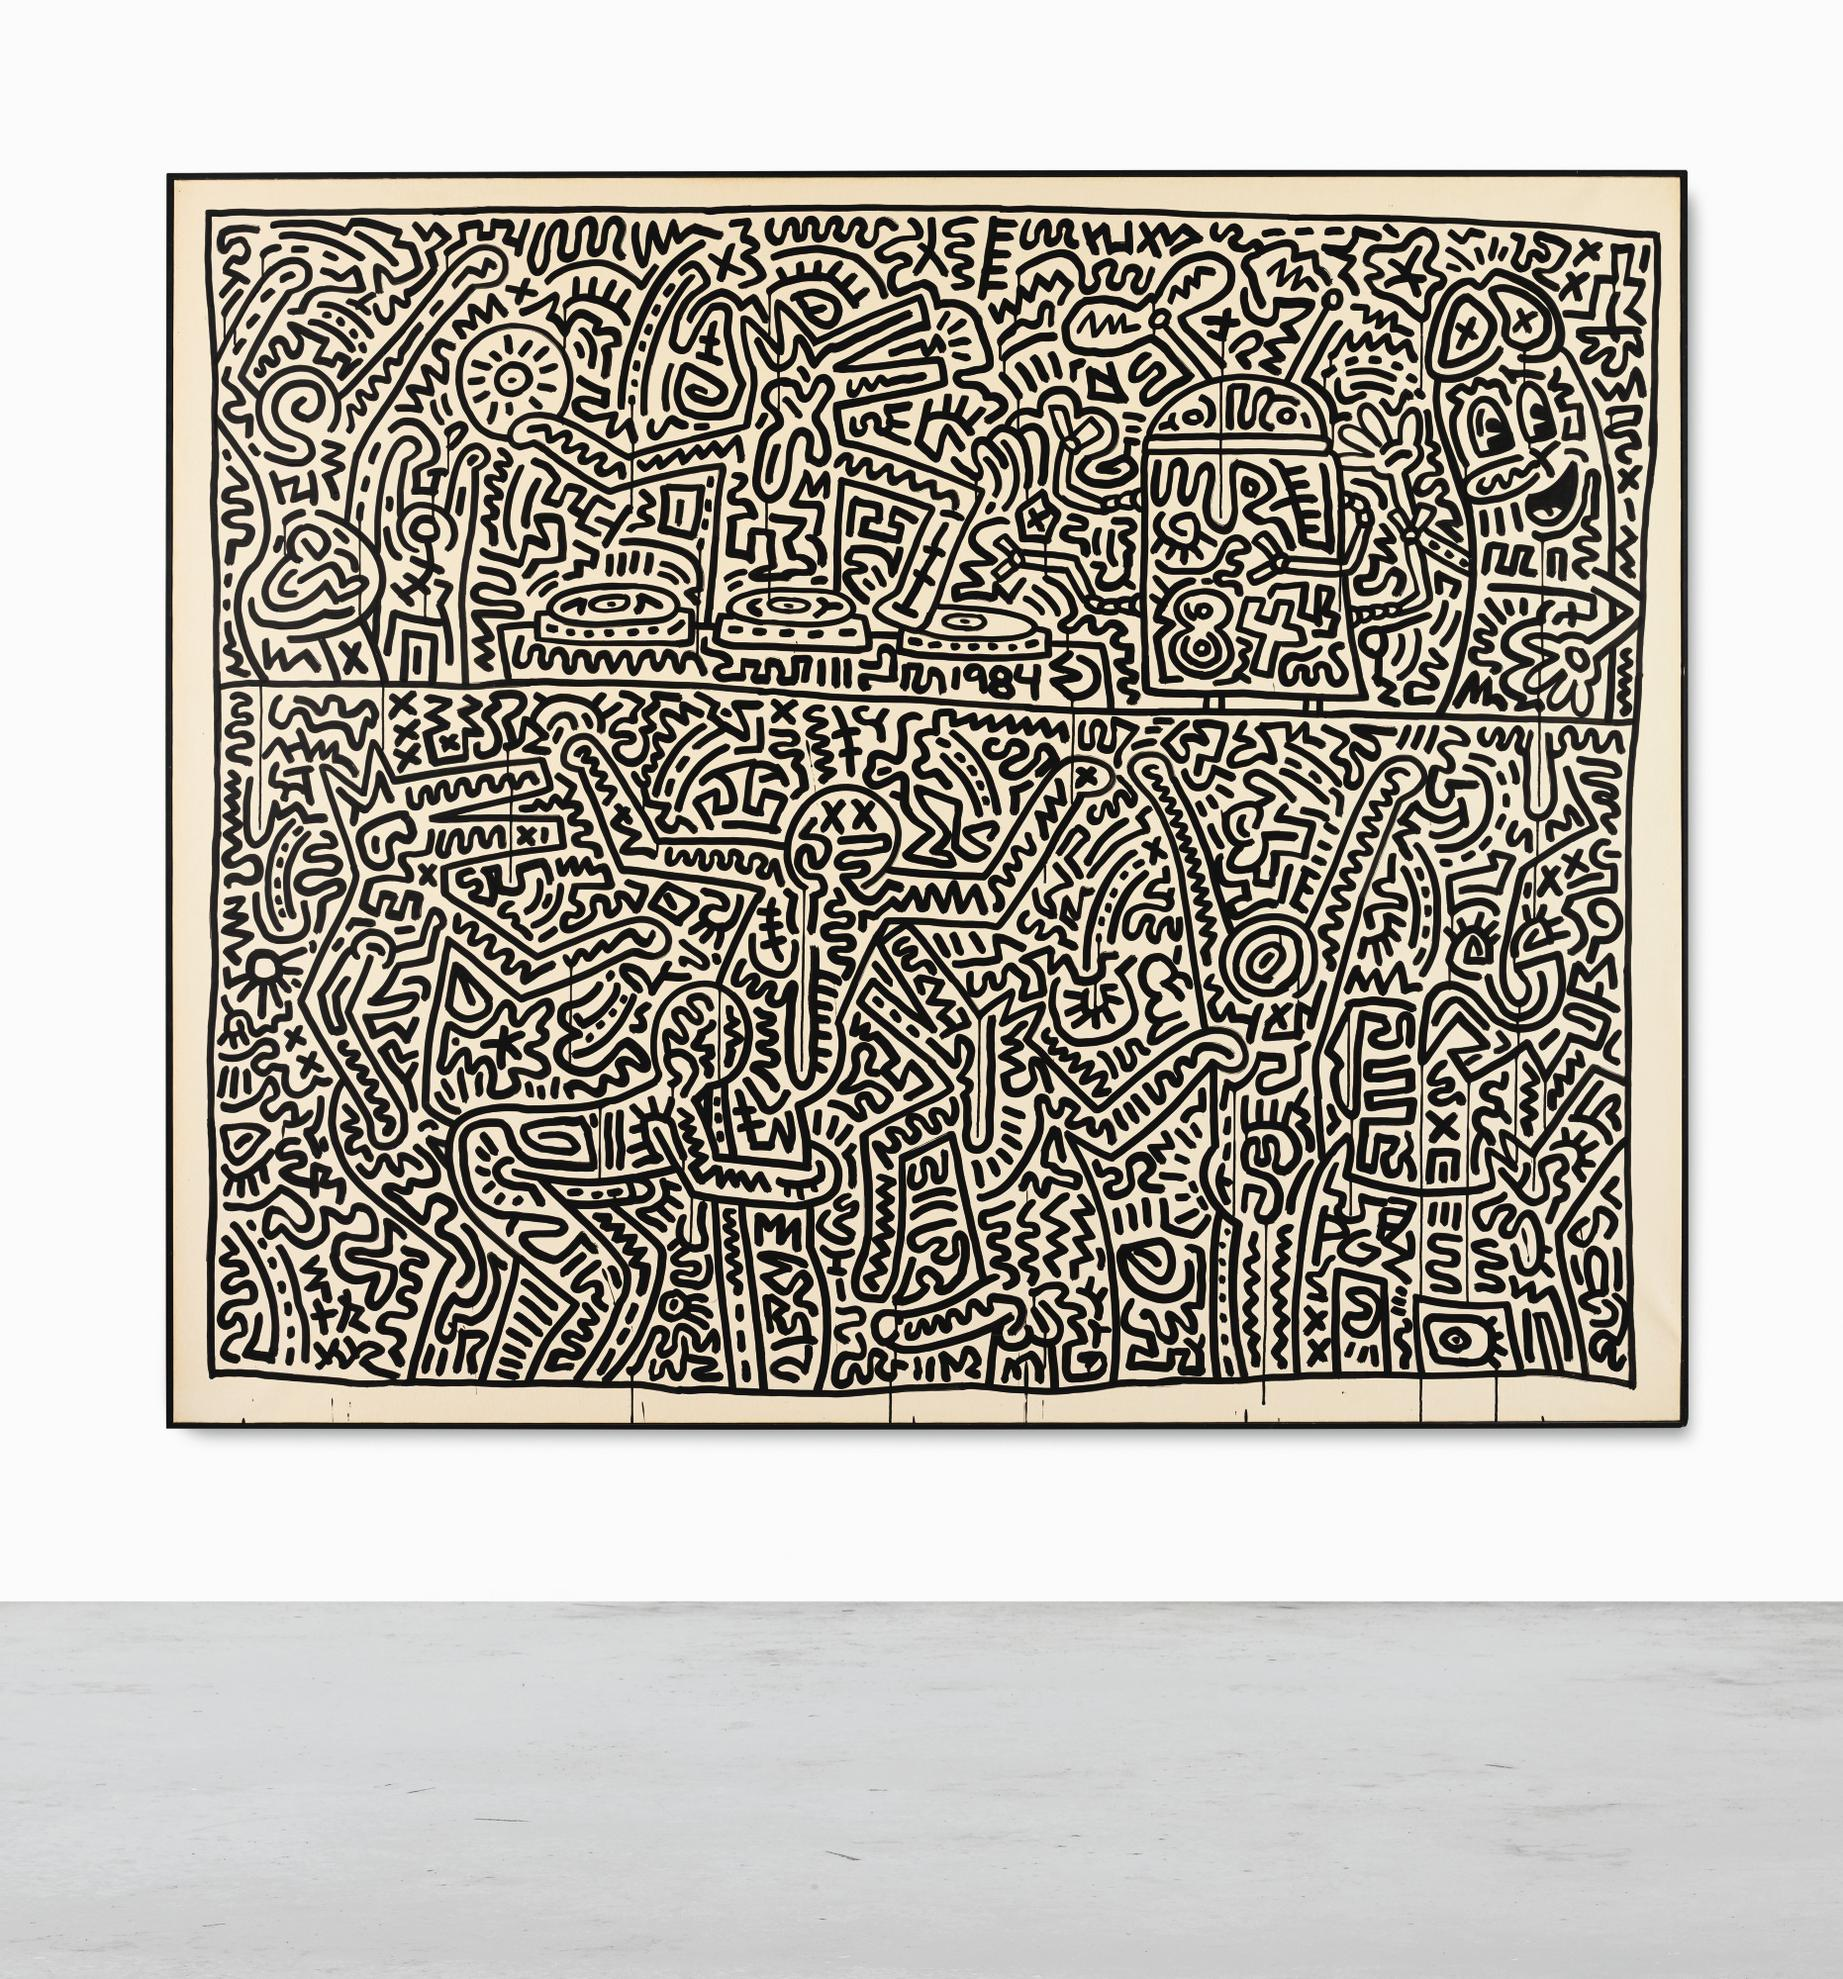 Keith Haring-August 15-1983